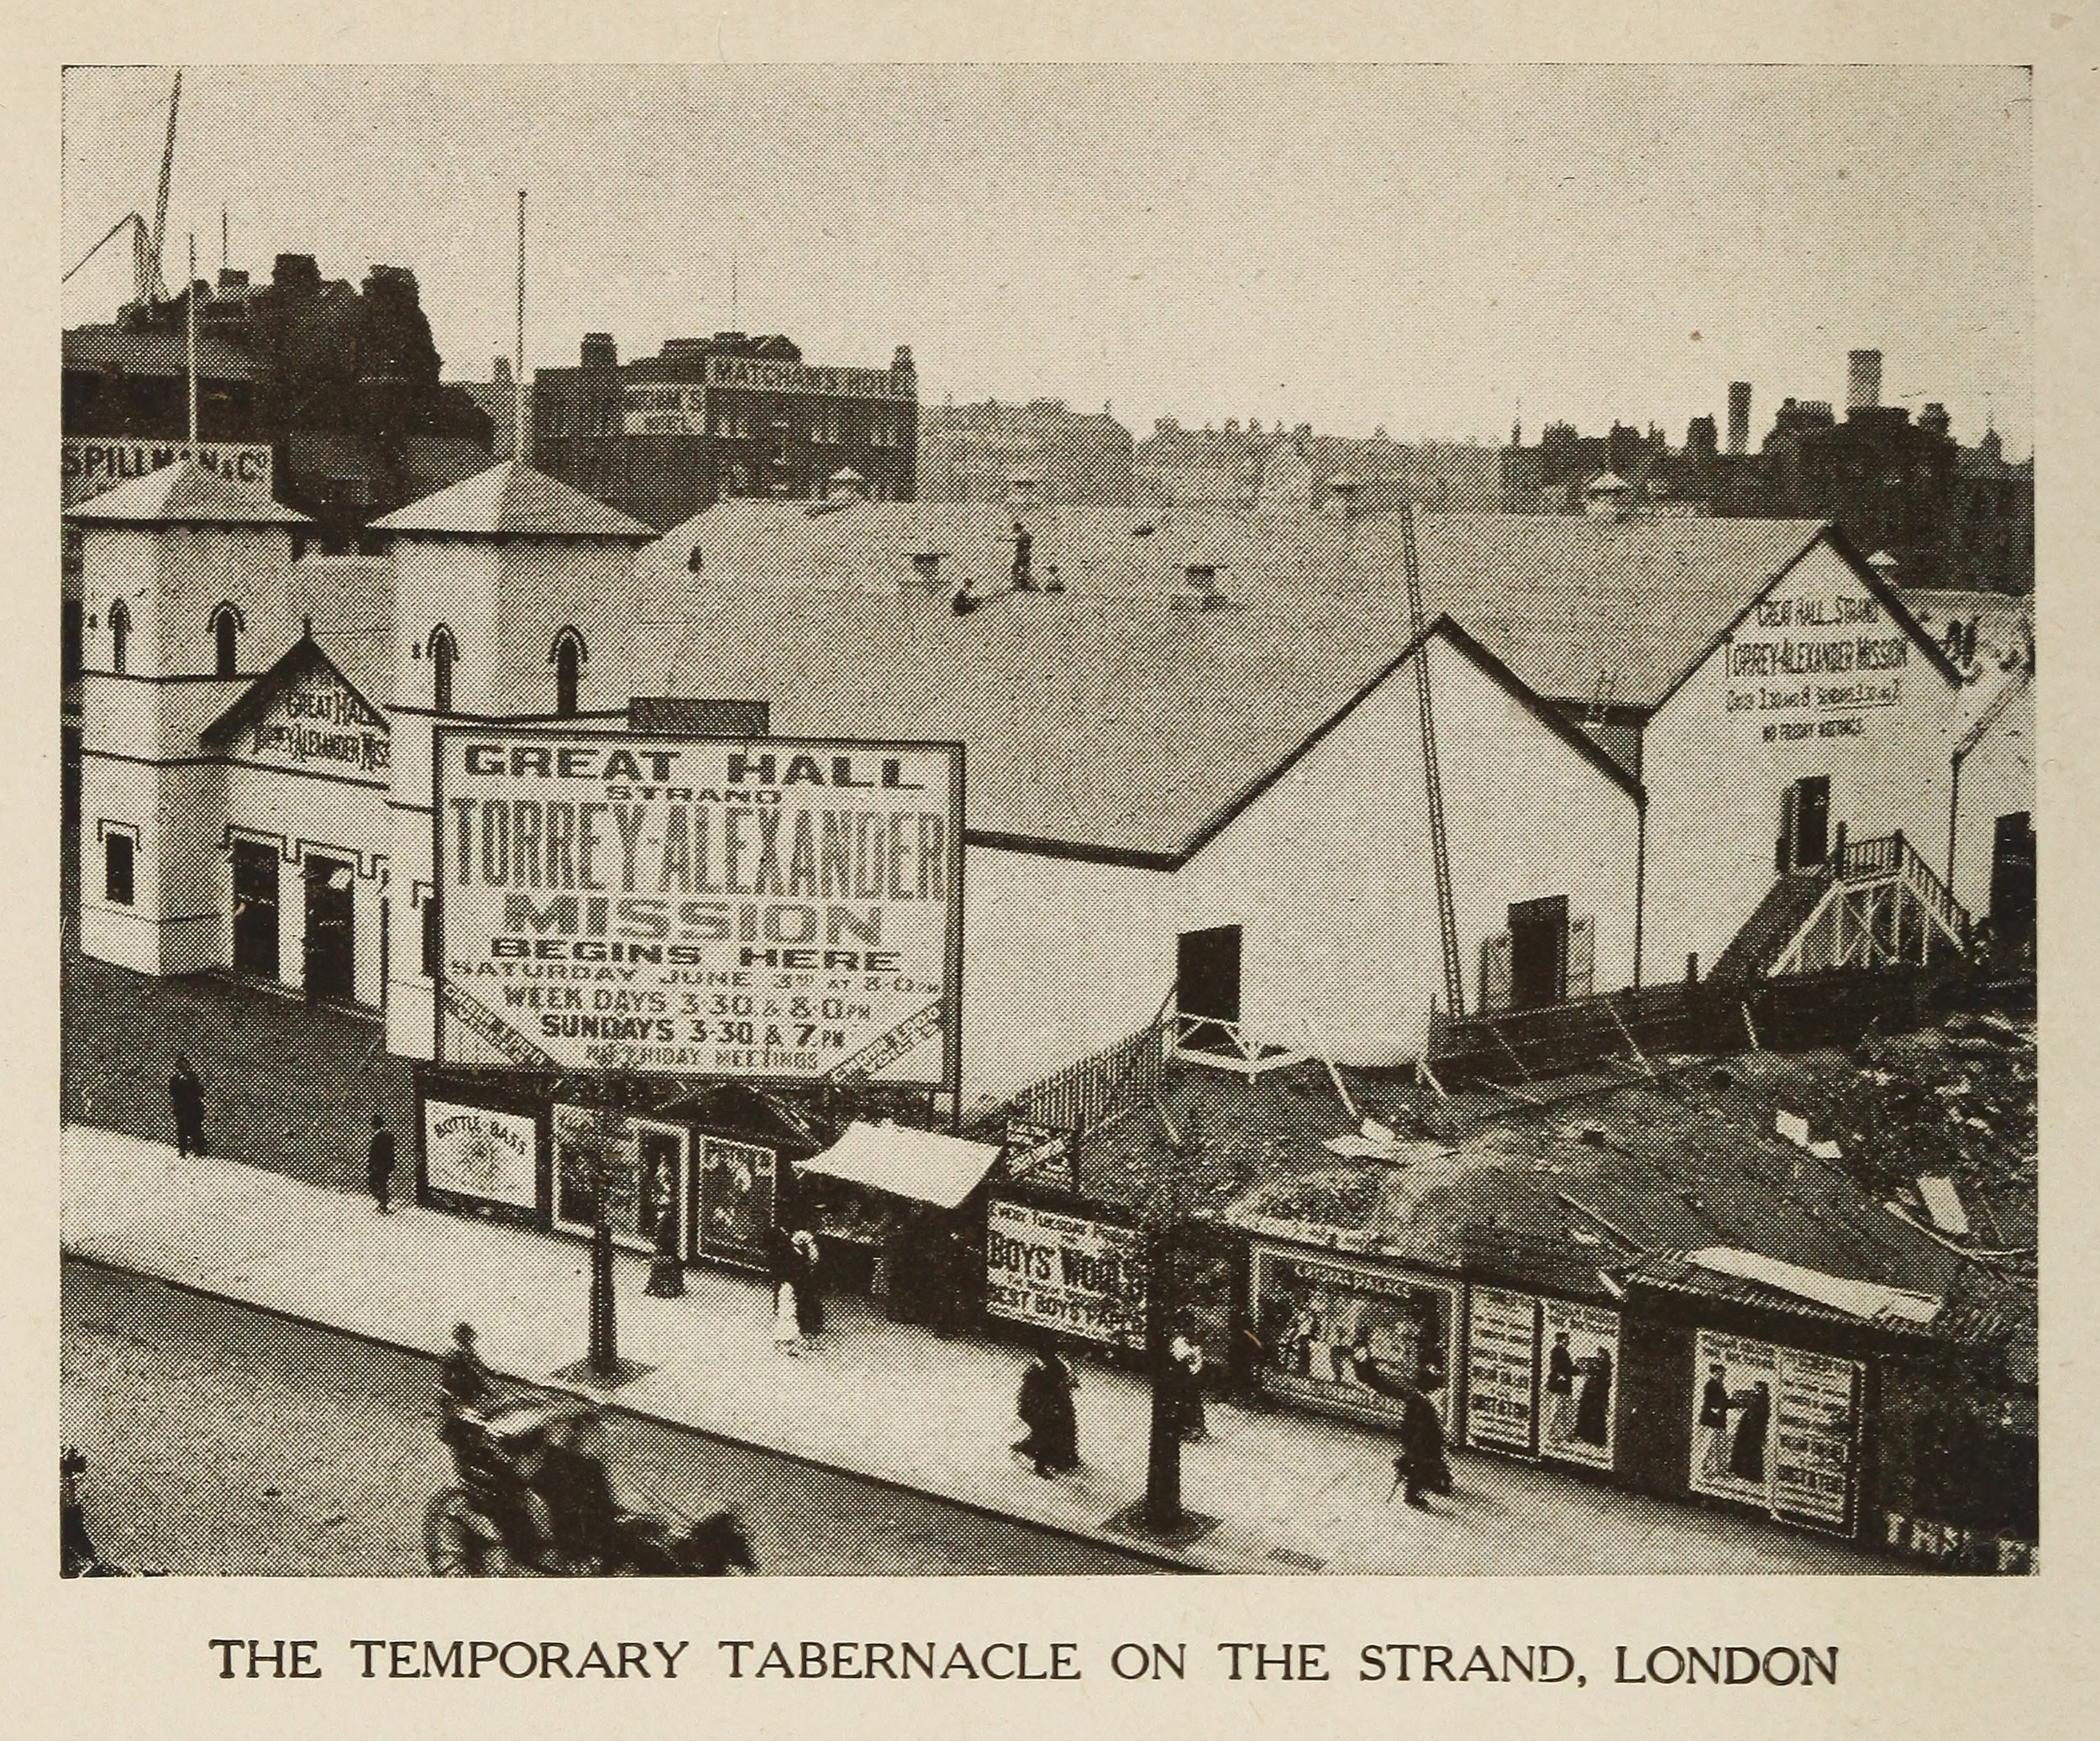 Mission site at The Strand, London, England, 1905, in  Twice Around the World with Alexander  (1907).